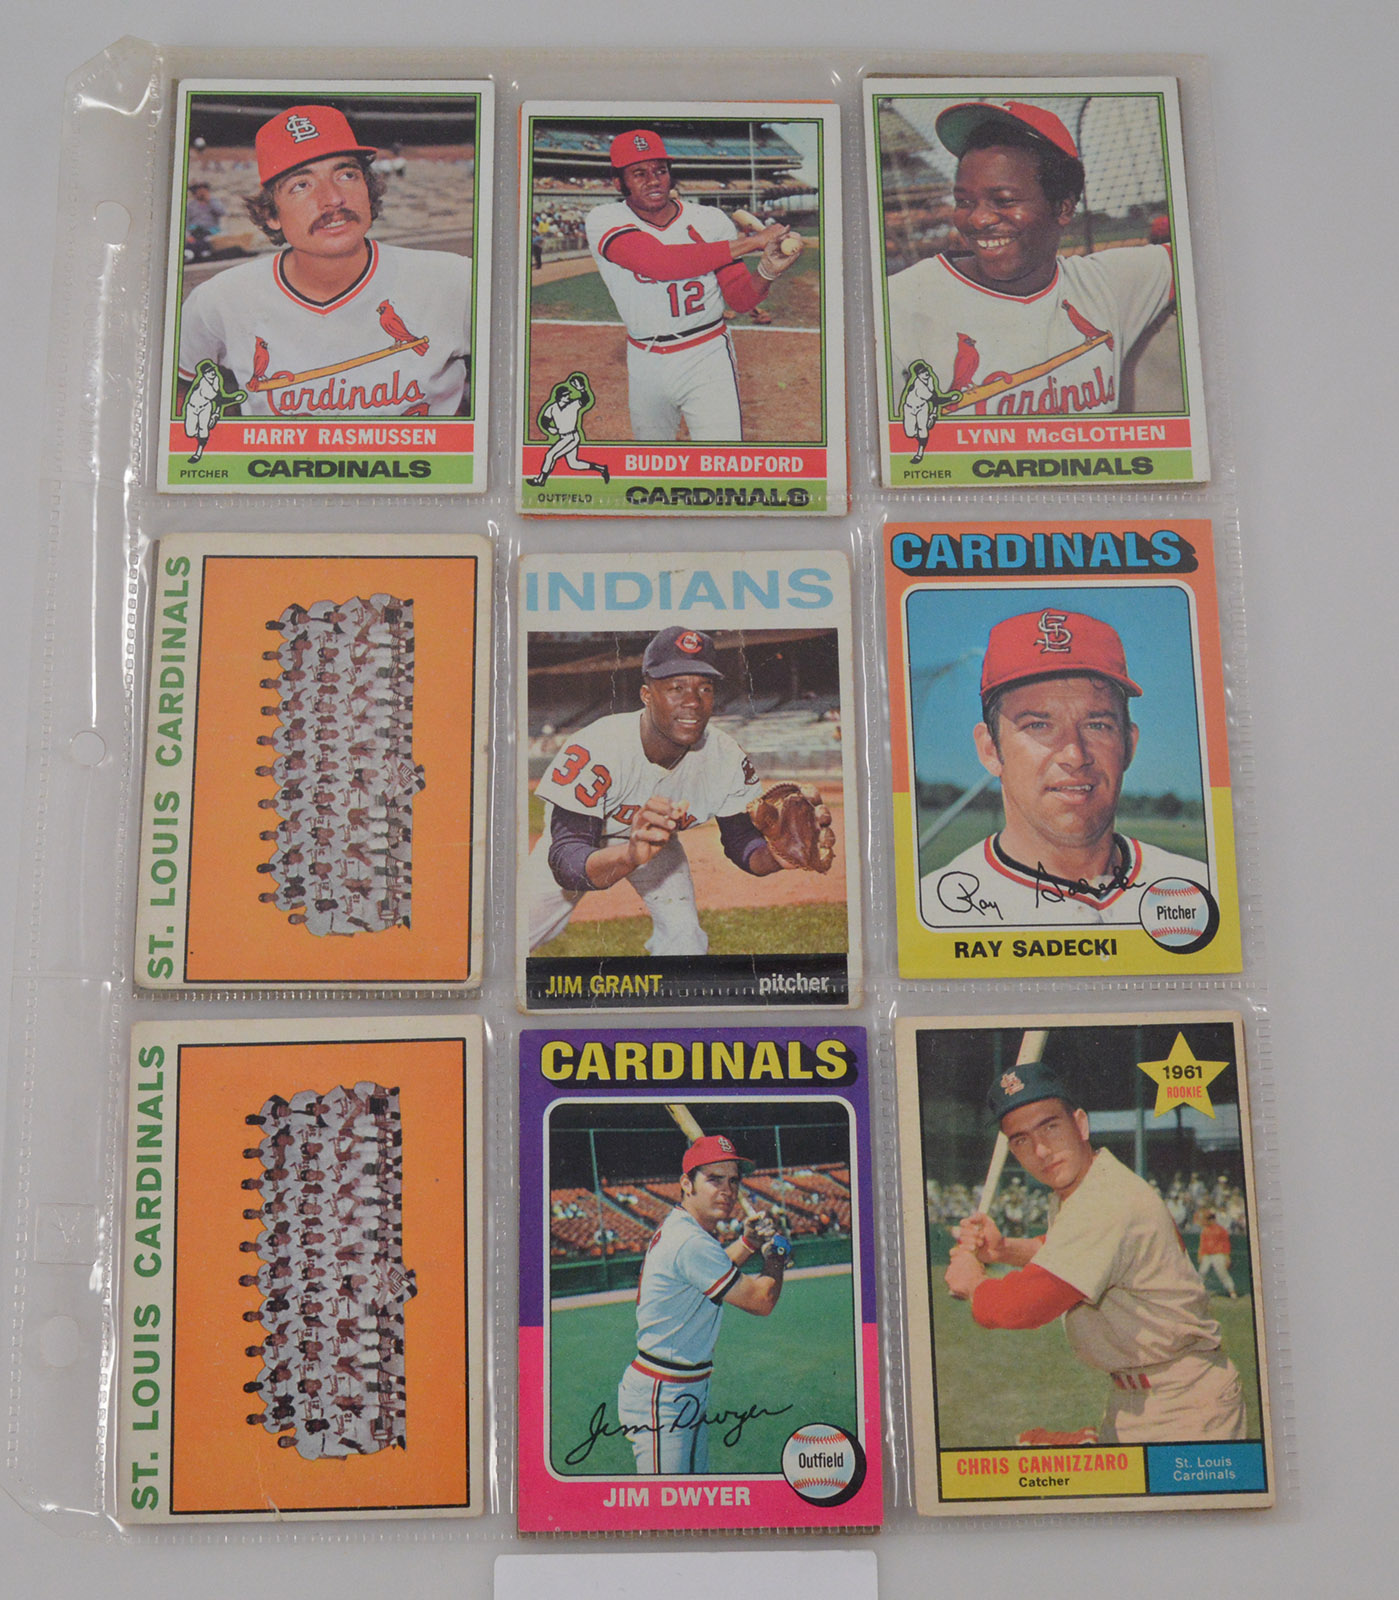 Sheet of Vintage Sports Cards - Cards on BOTH Sides! - Great